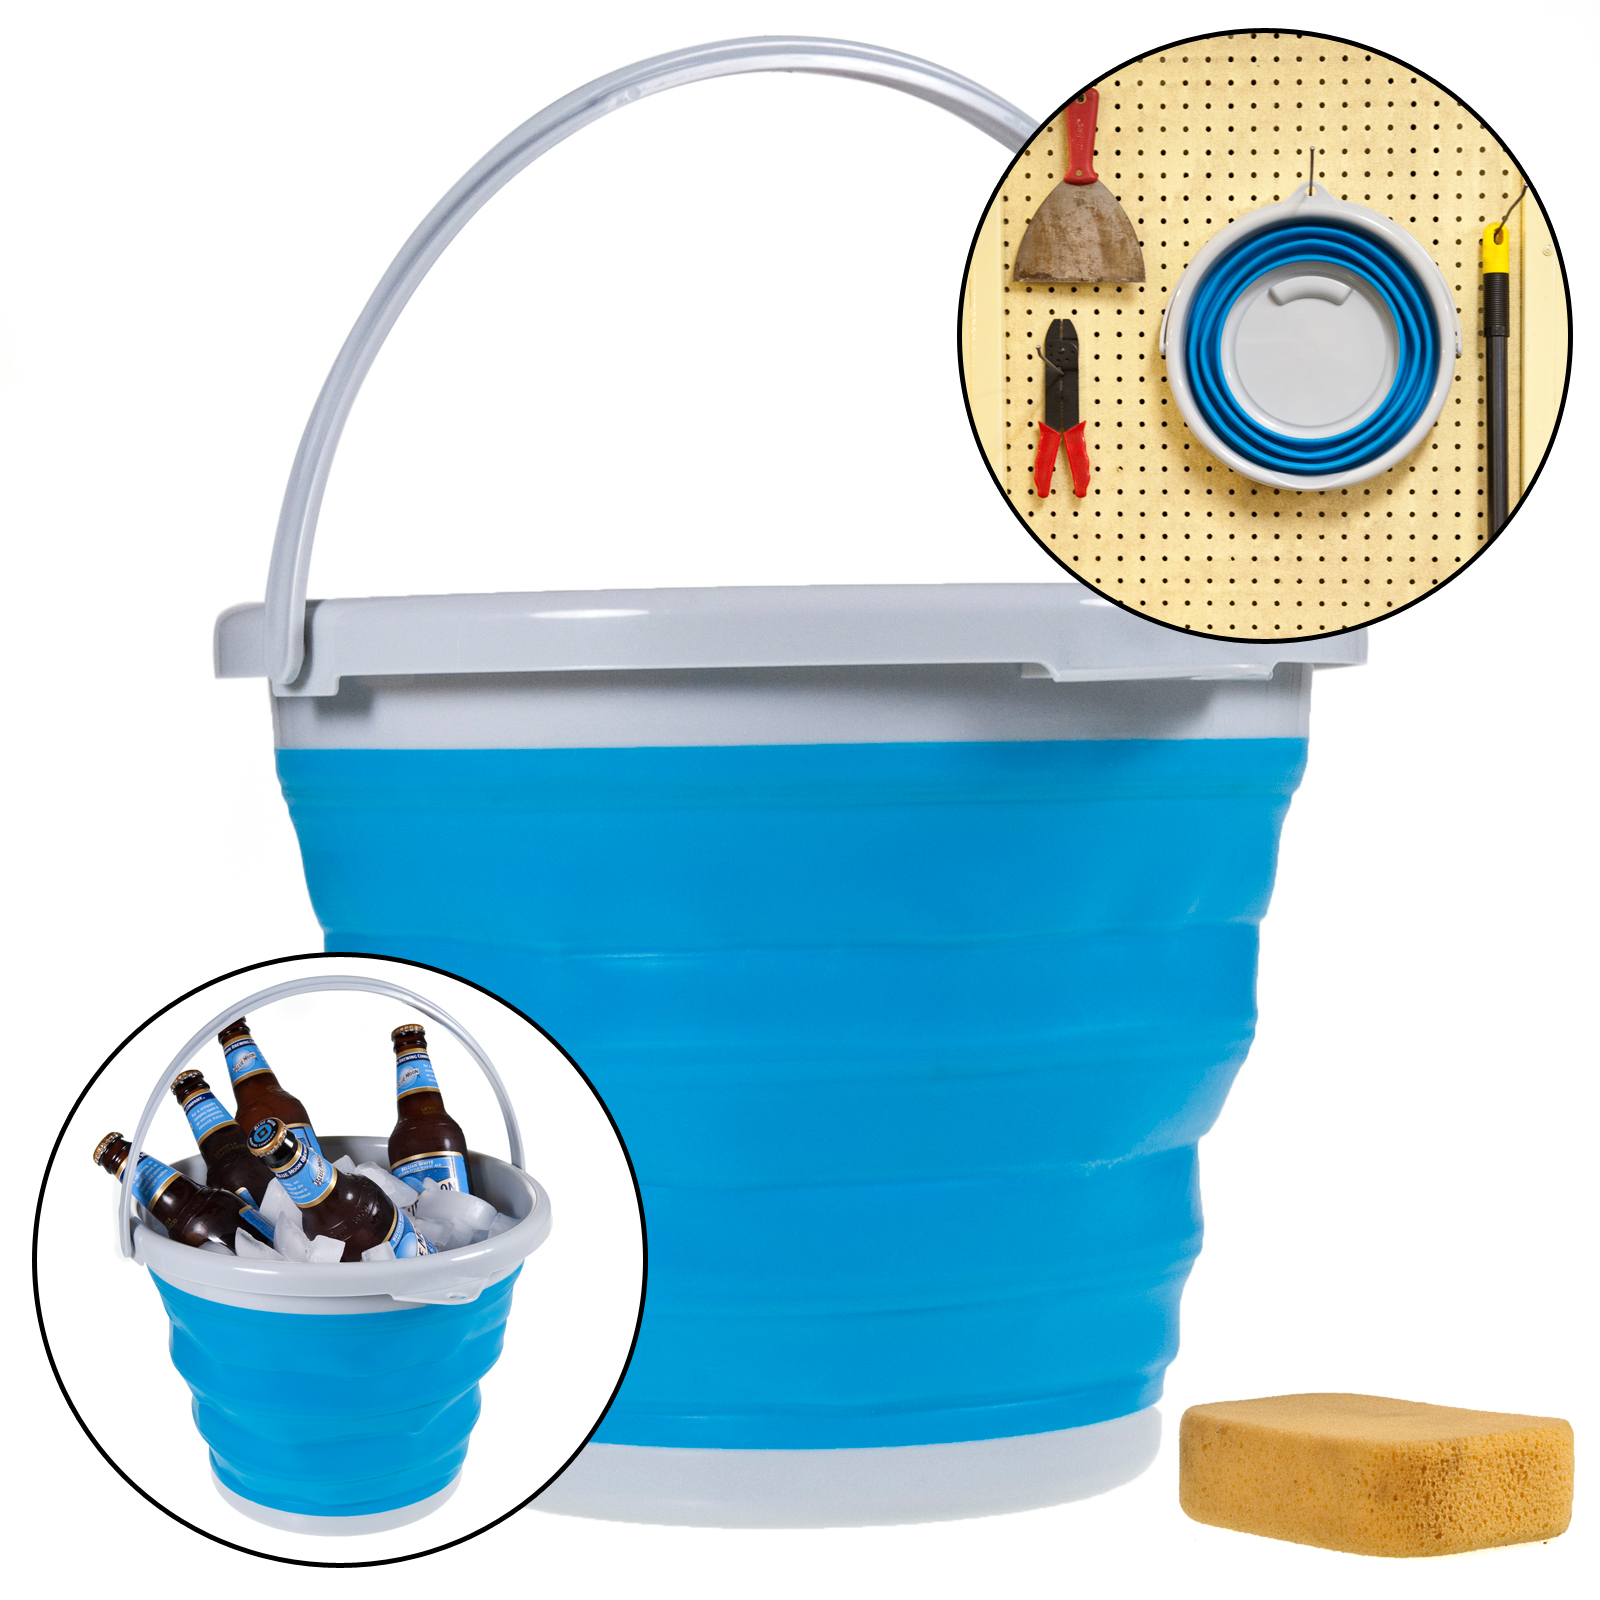 Simply Genius Foldable Silicone 10L Bucket 2.6 Gallon Collapsible Clean Camp Car